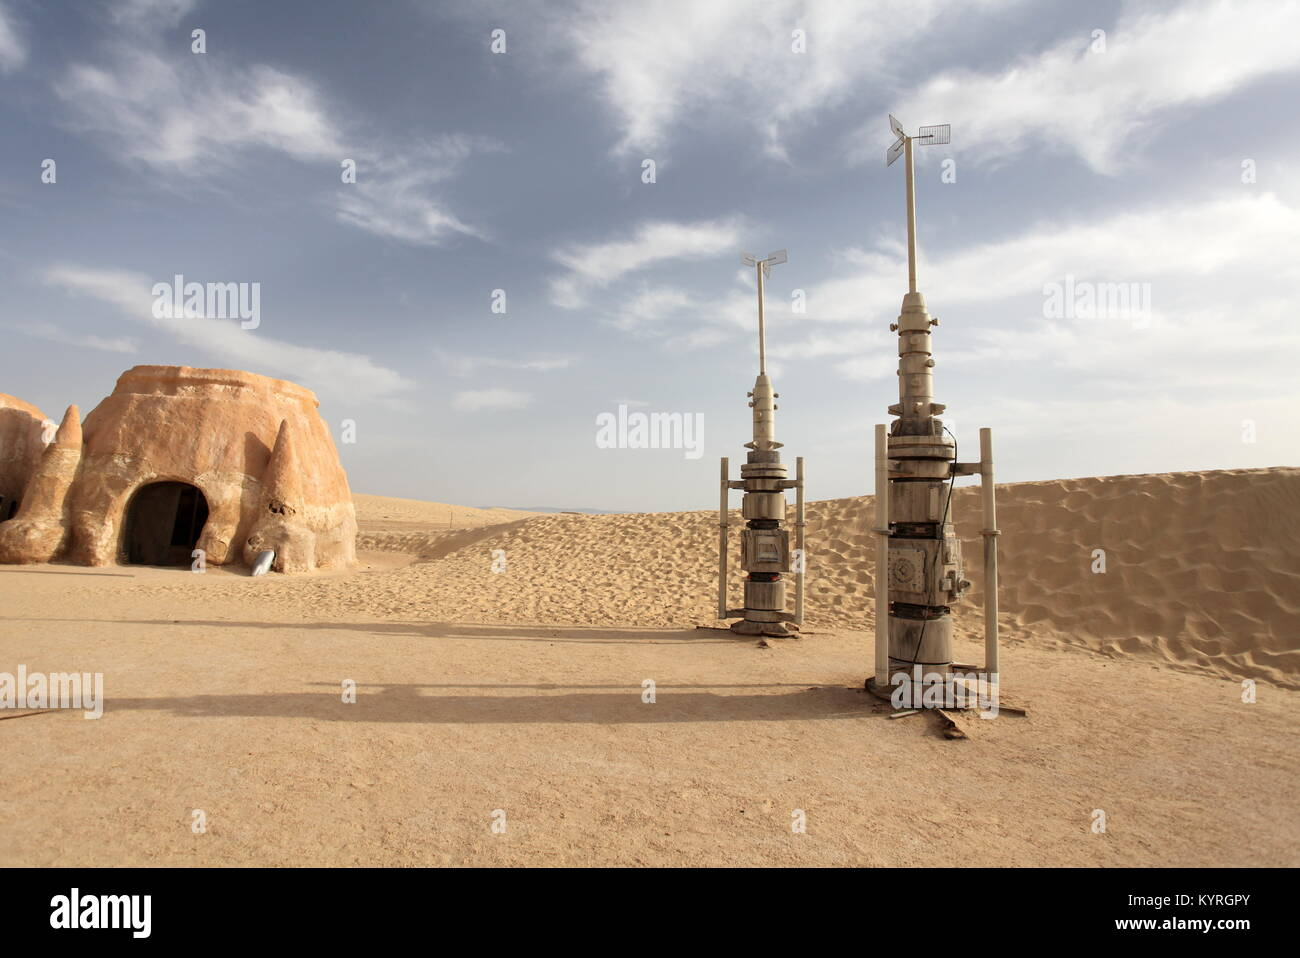 The scenery for the movie 'Star Wars' the Sahara Desert, Tunisia - Stock Image